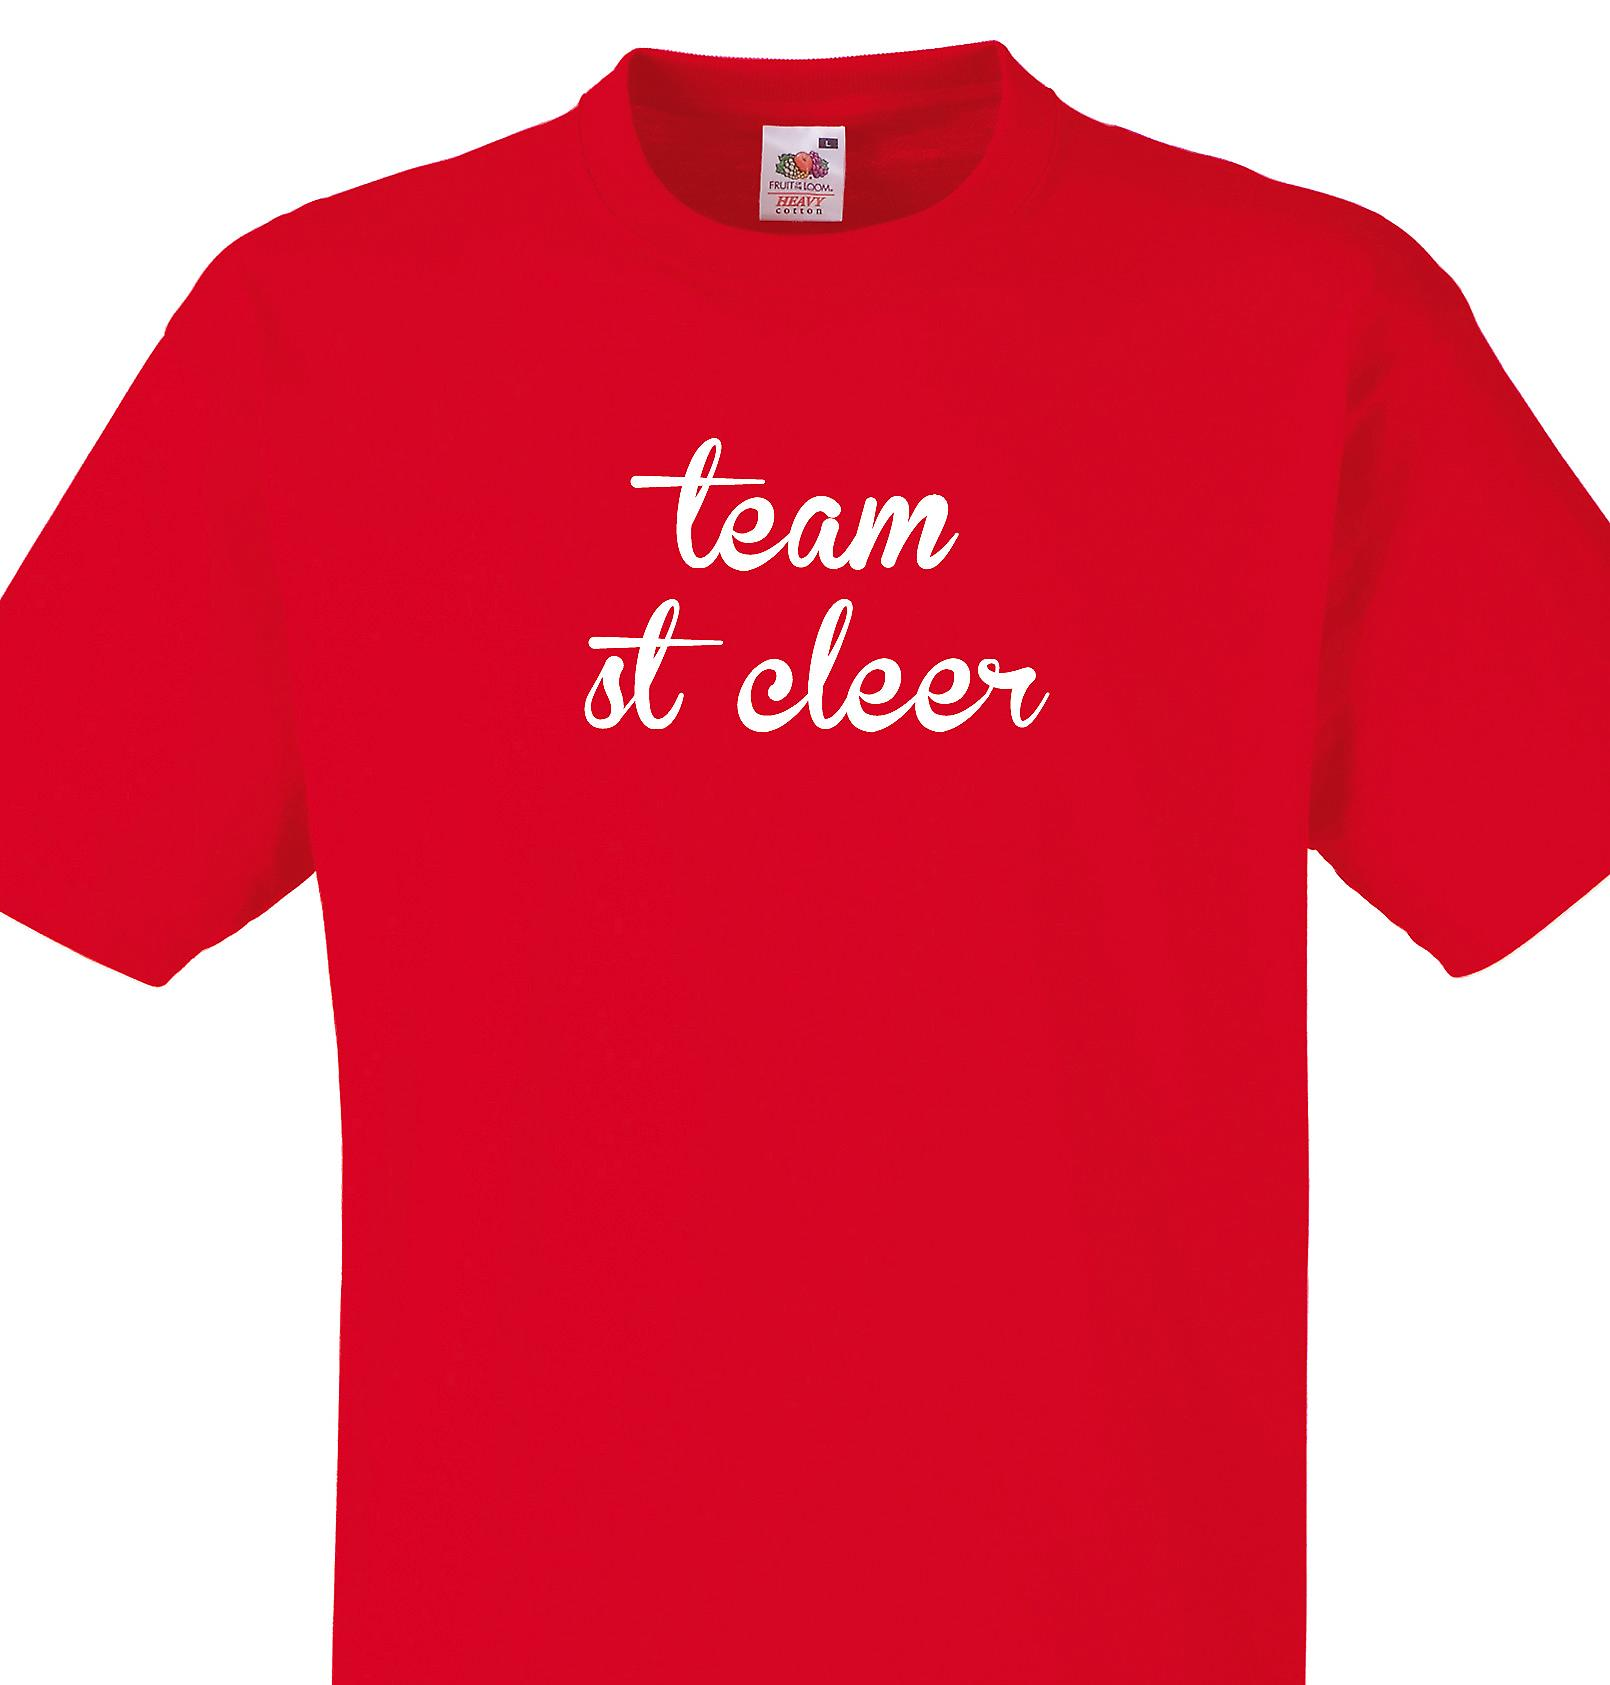 Team St cleer Red T shirt